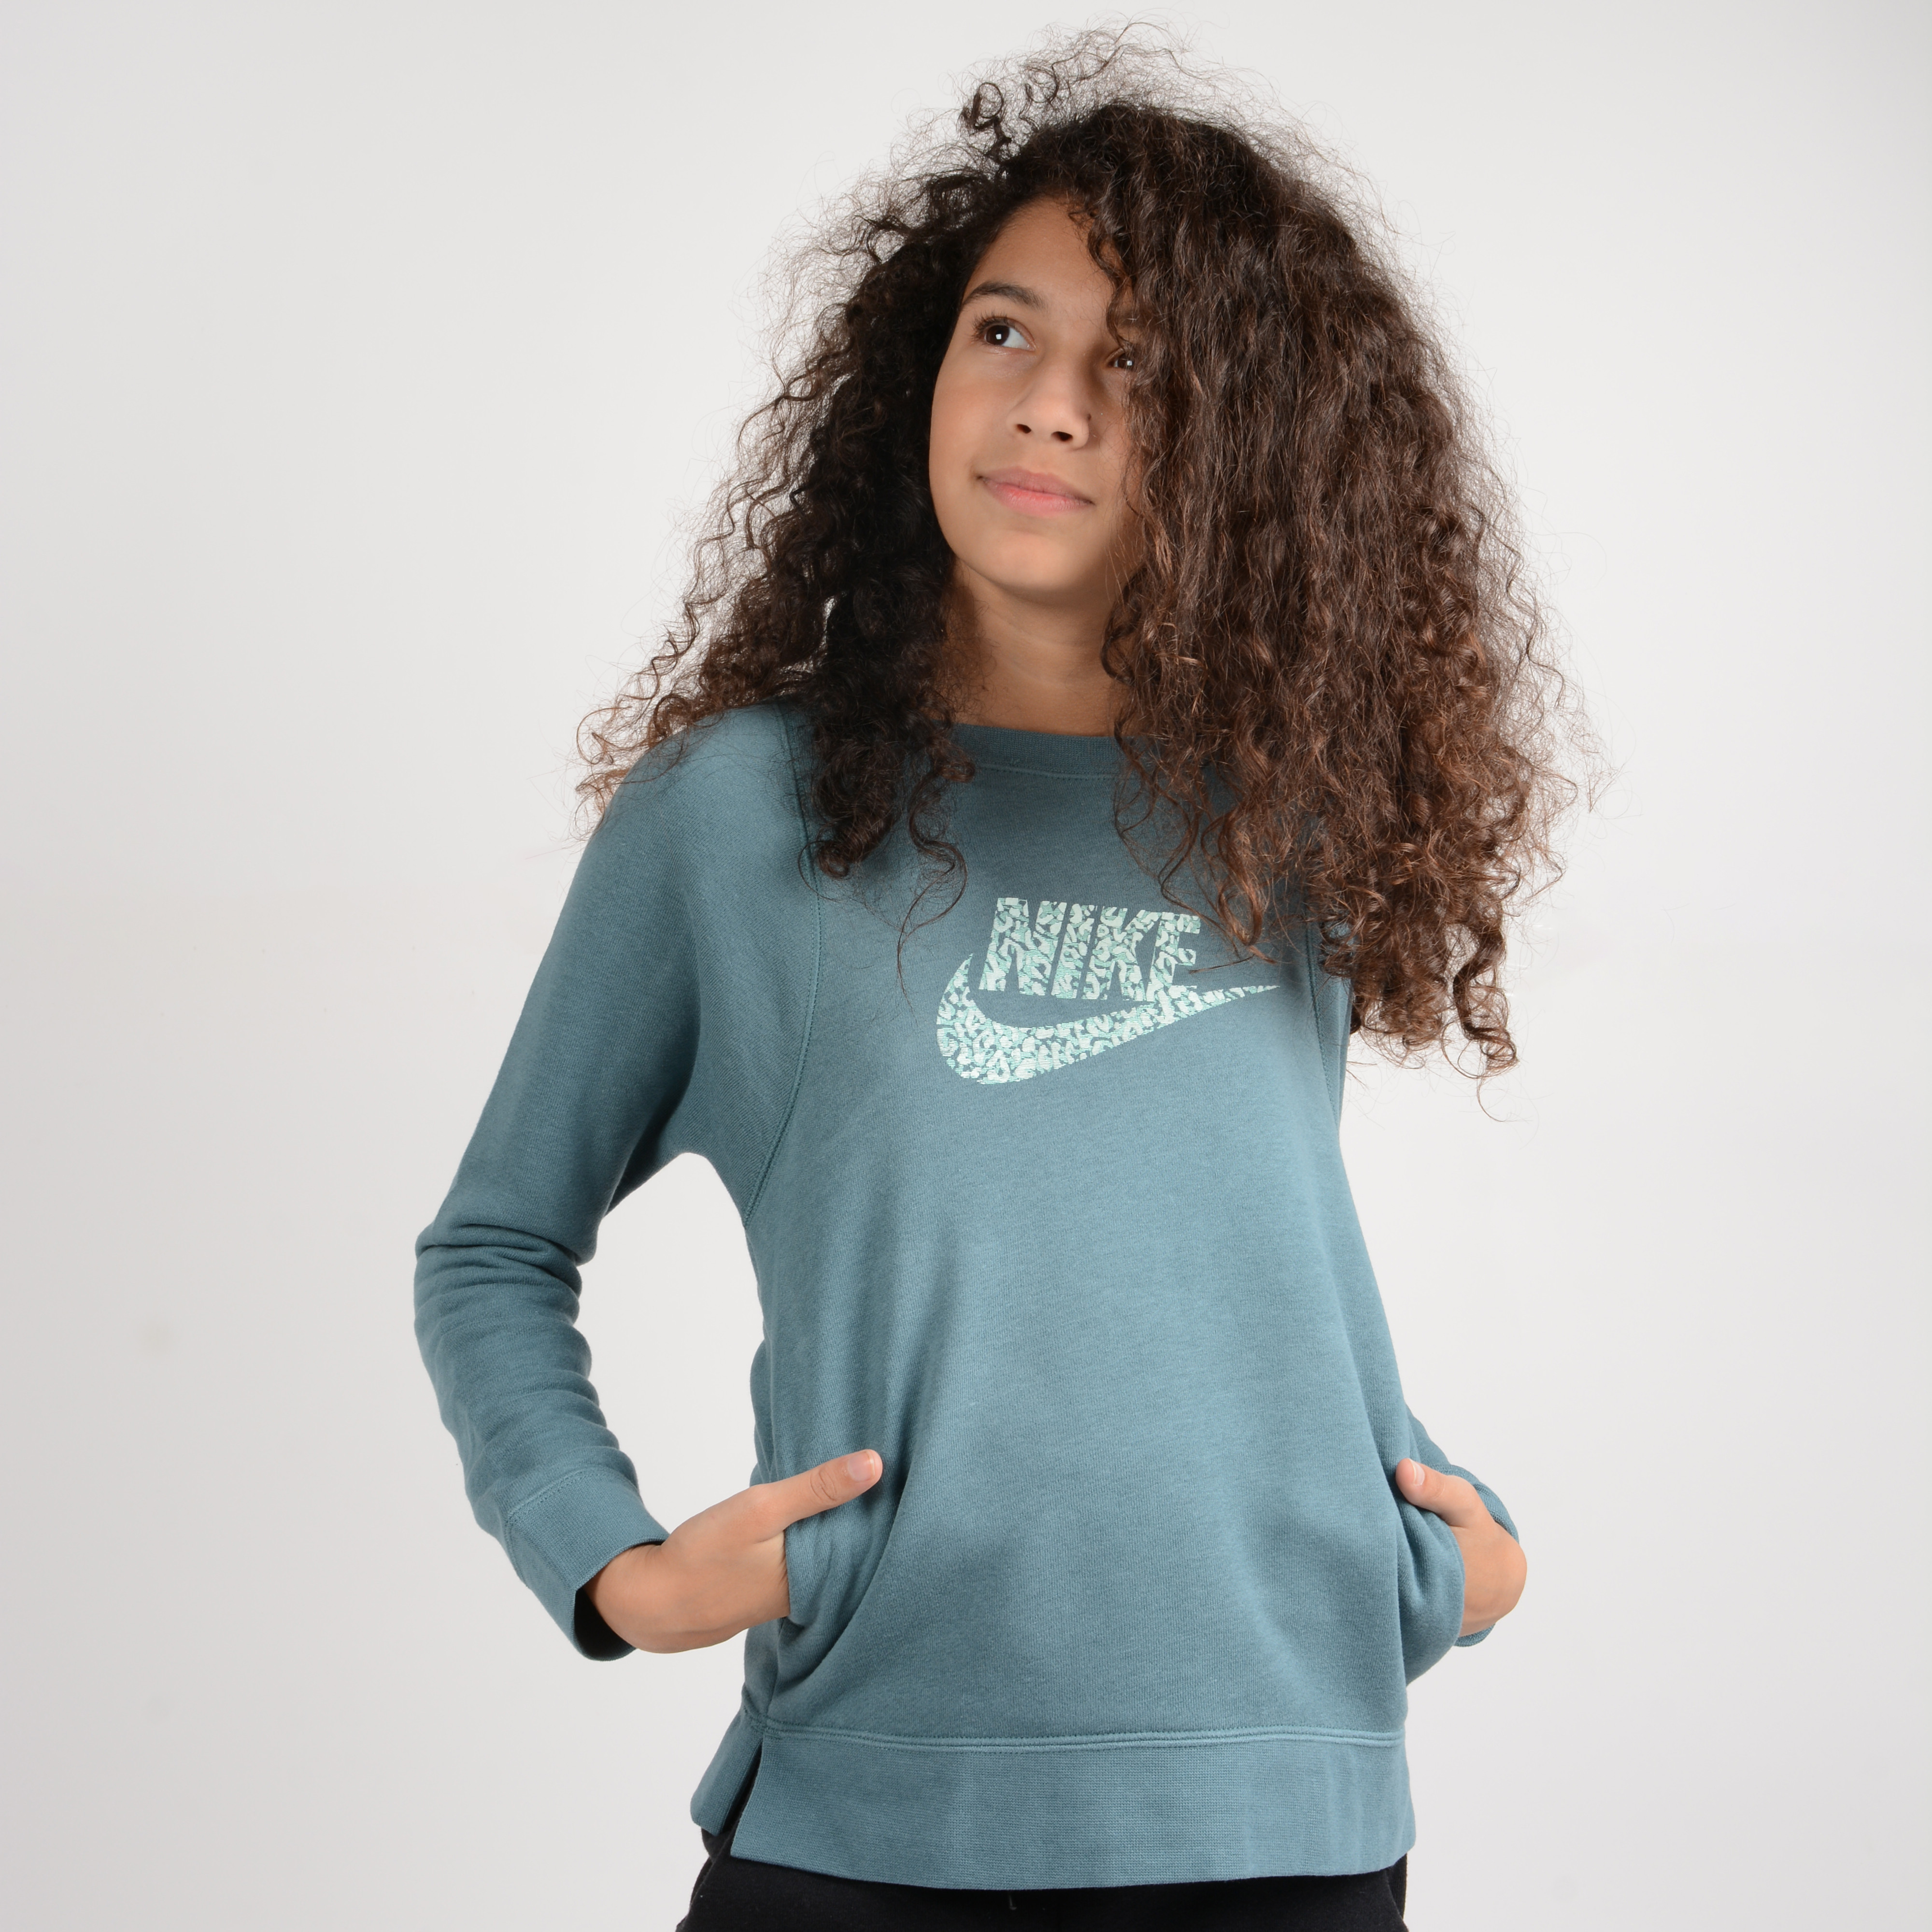 Nike KID'S SWEATSHIRT